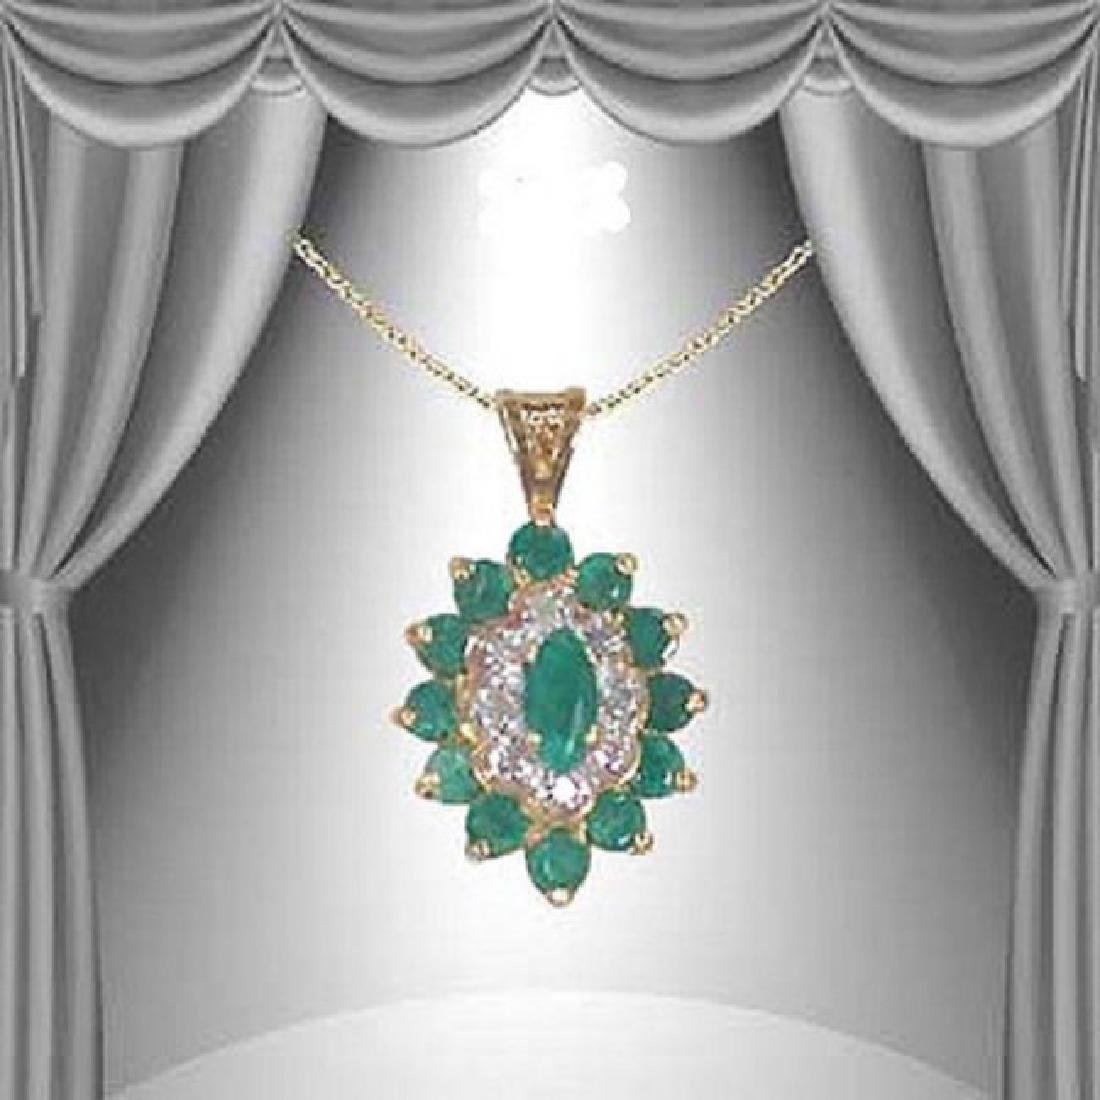 3.92 CT Green Agate & Diamond Fine Necklace $1170